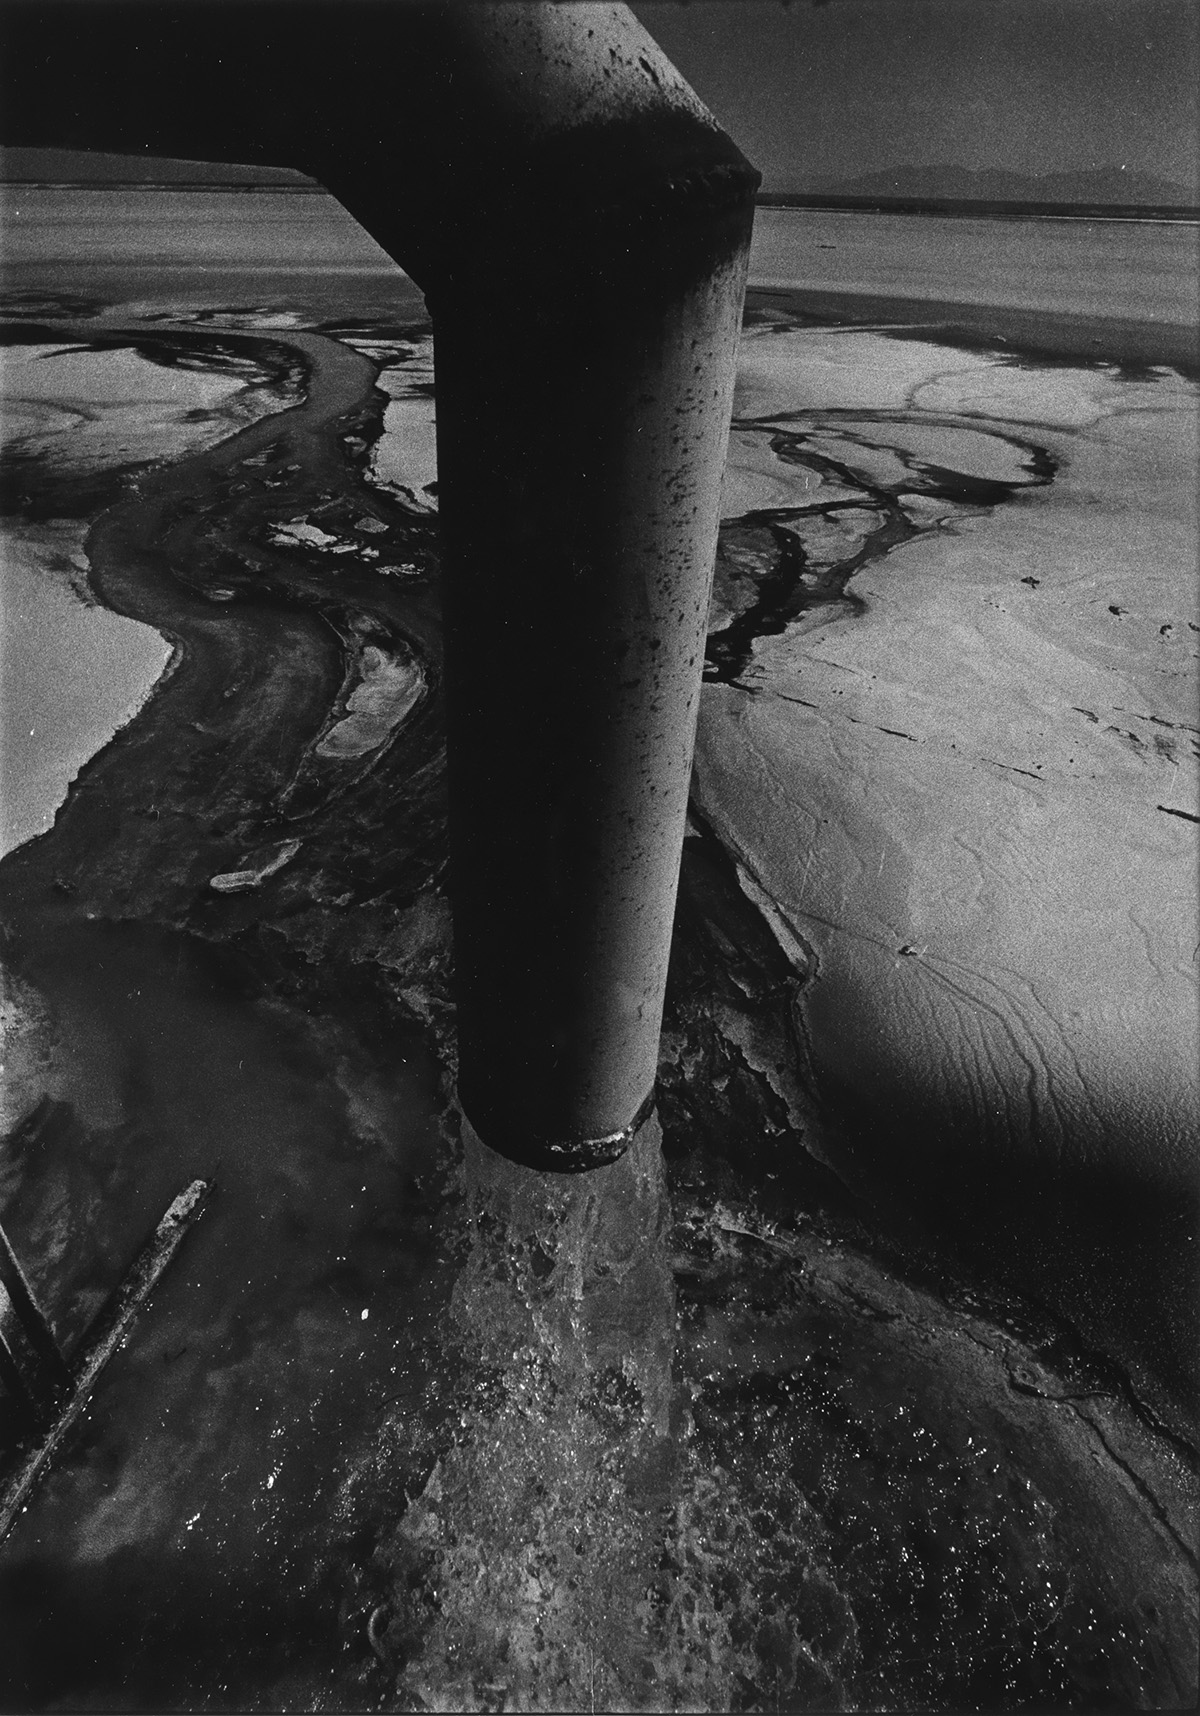 W-EUGENE-SMITH-(1918-1978)-Chisso-Factory-conduit-pipe-Minam